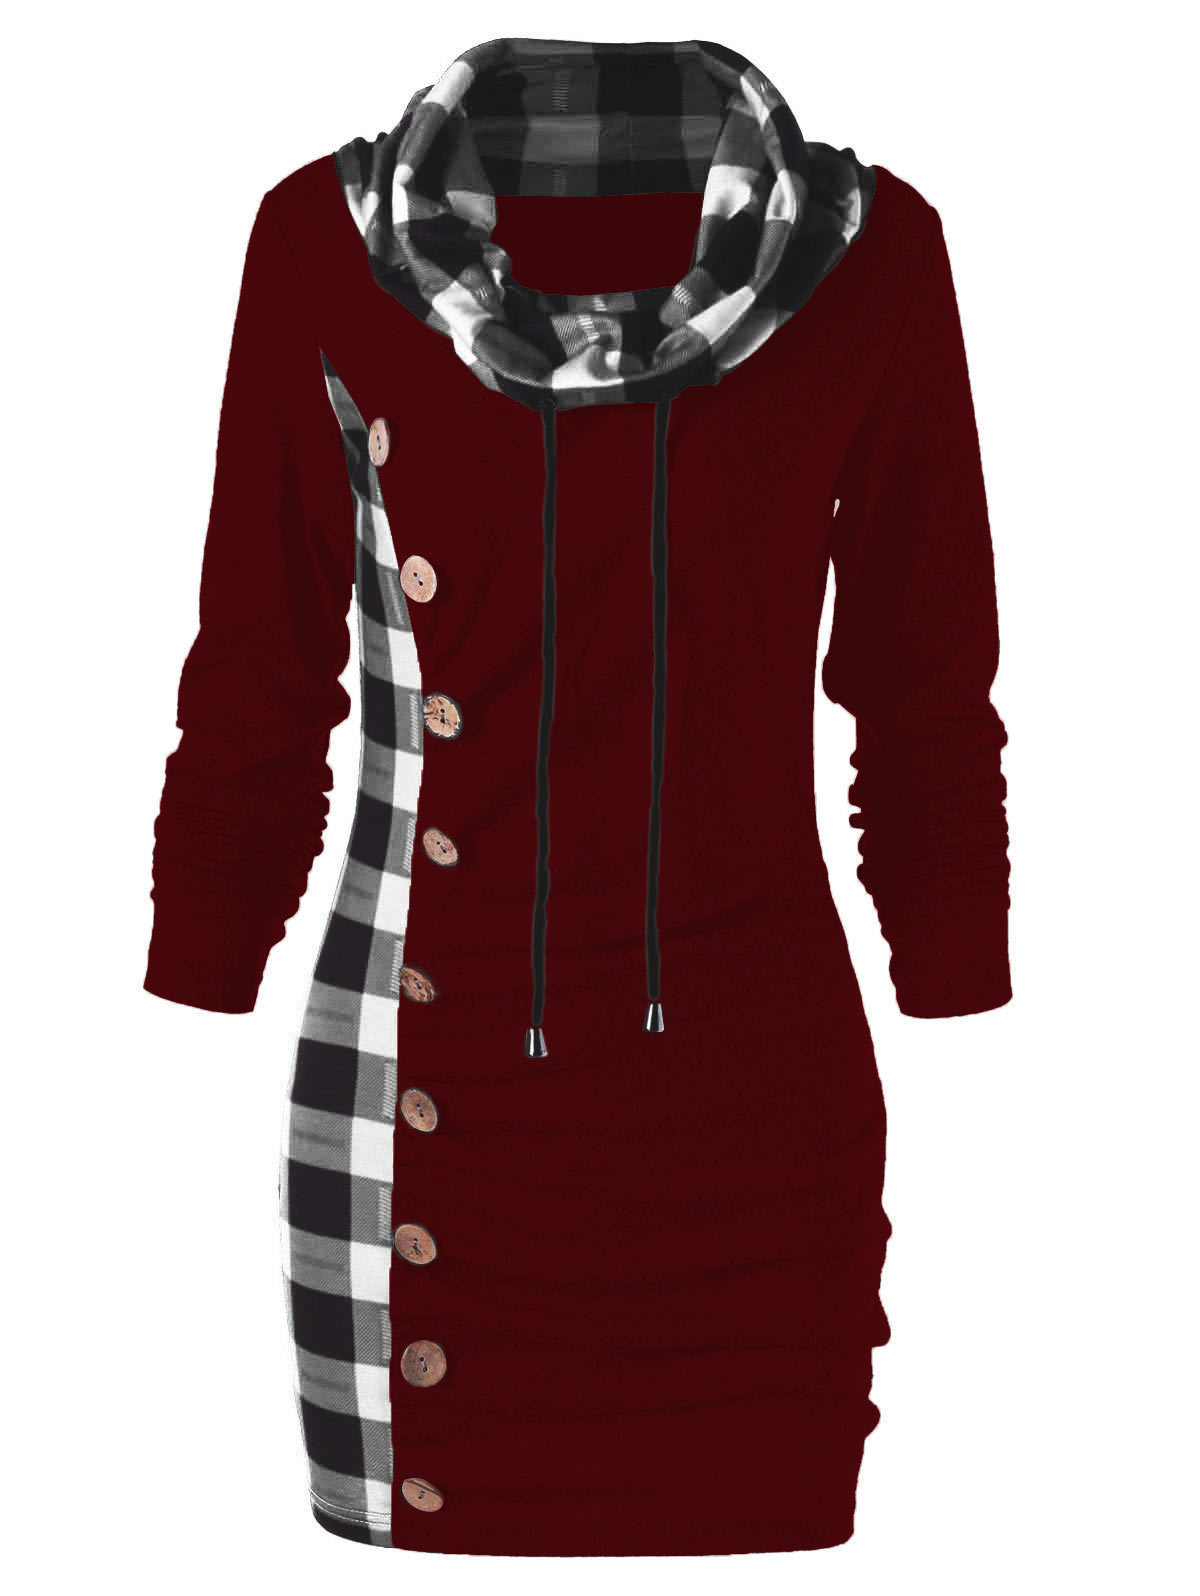 Wipalo Bottons Plaid Trim Drawstring Tunic Sweatshirt Dress Female Casual Sheath Cowl Neck Long Sleeve Dress Winter Fall Vestido Y19021410